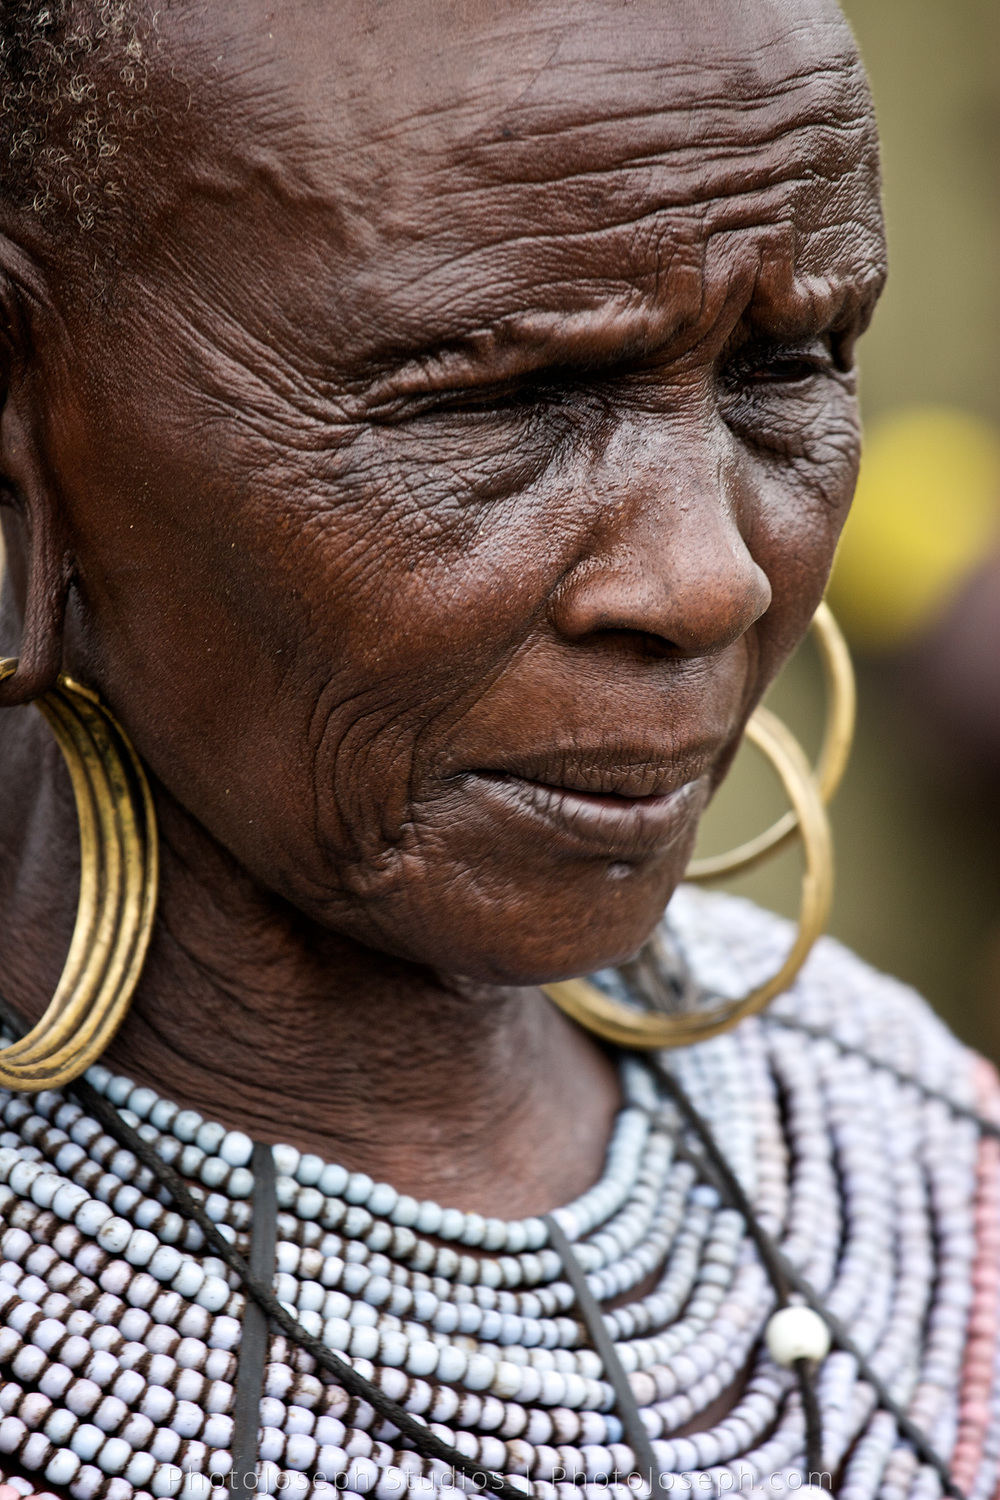 Elder of the Pokot